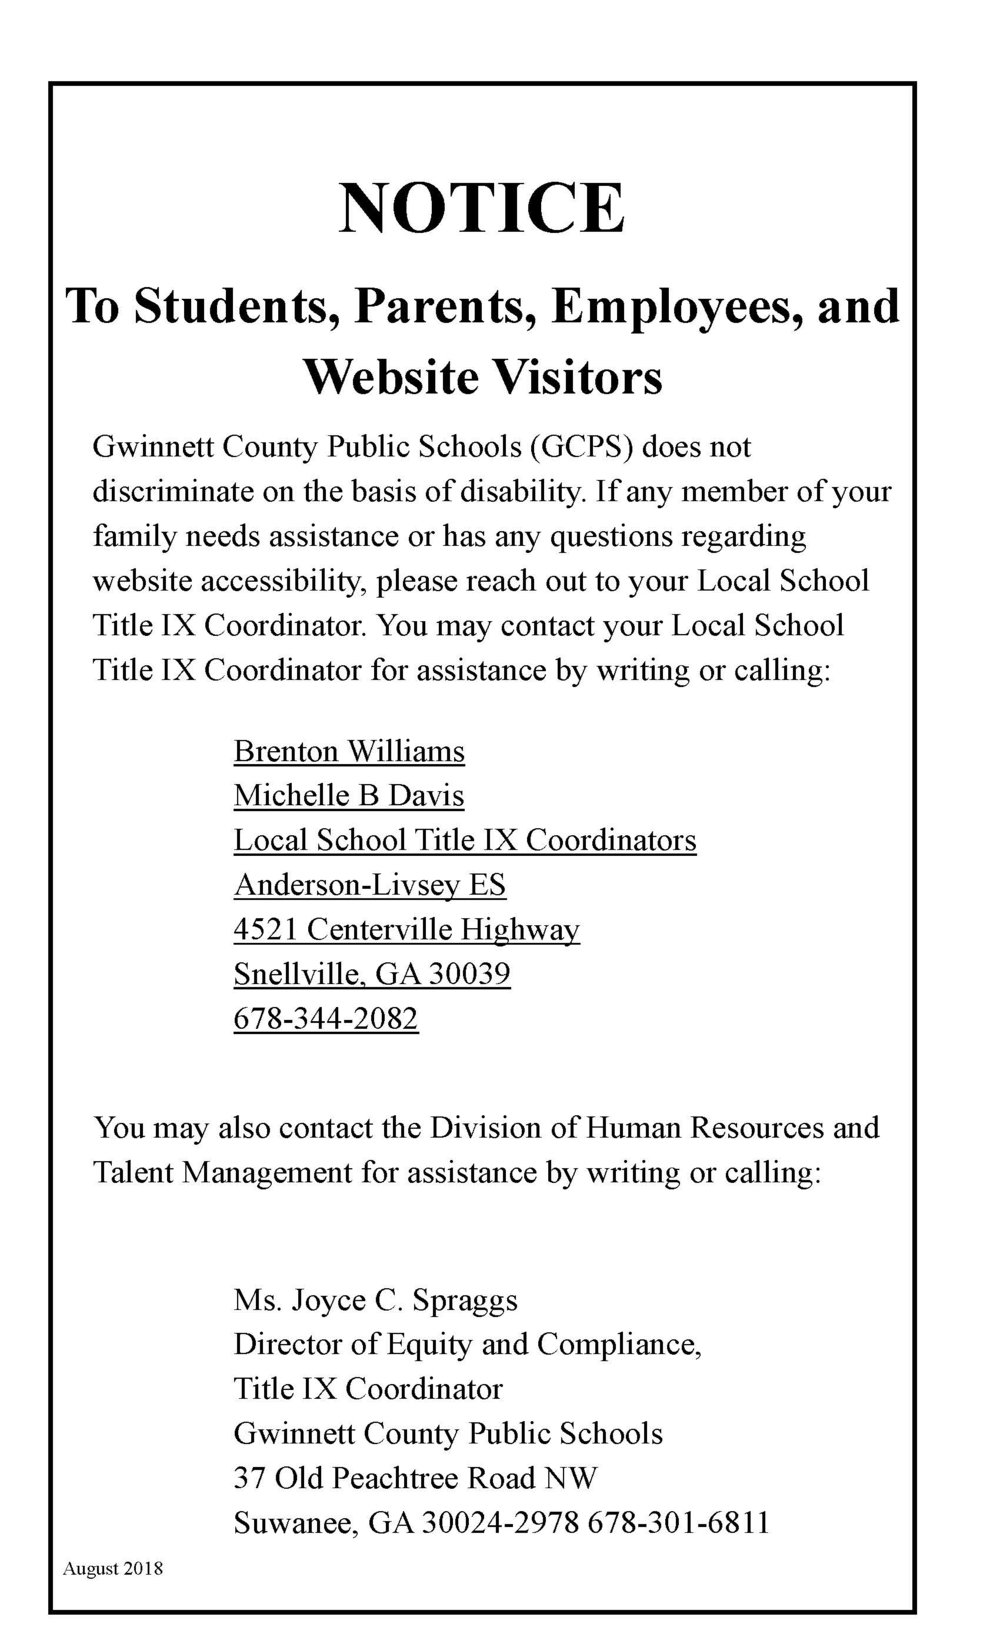 Anderson_Livsey ES Website Accessibility.jpg